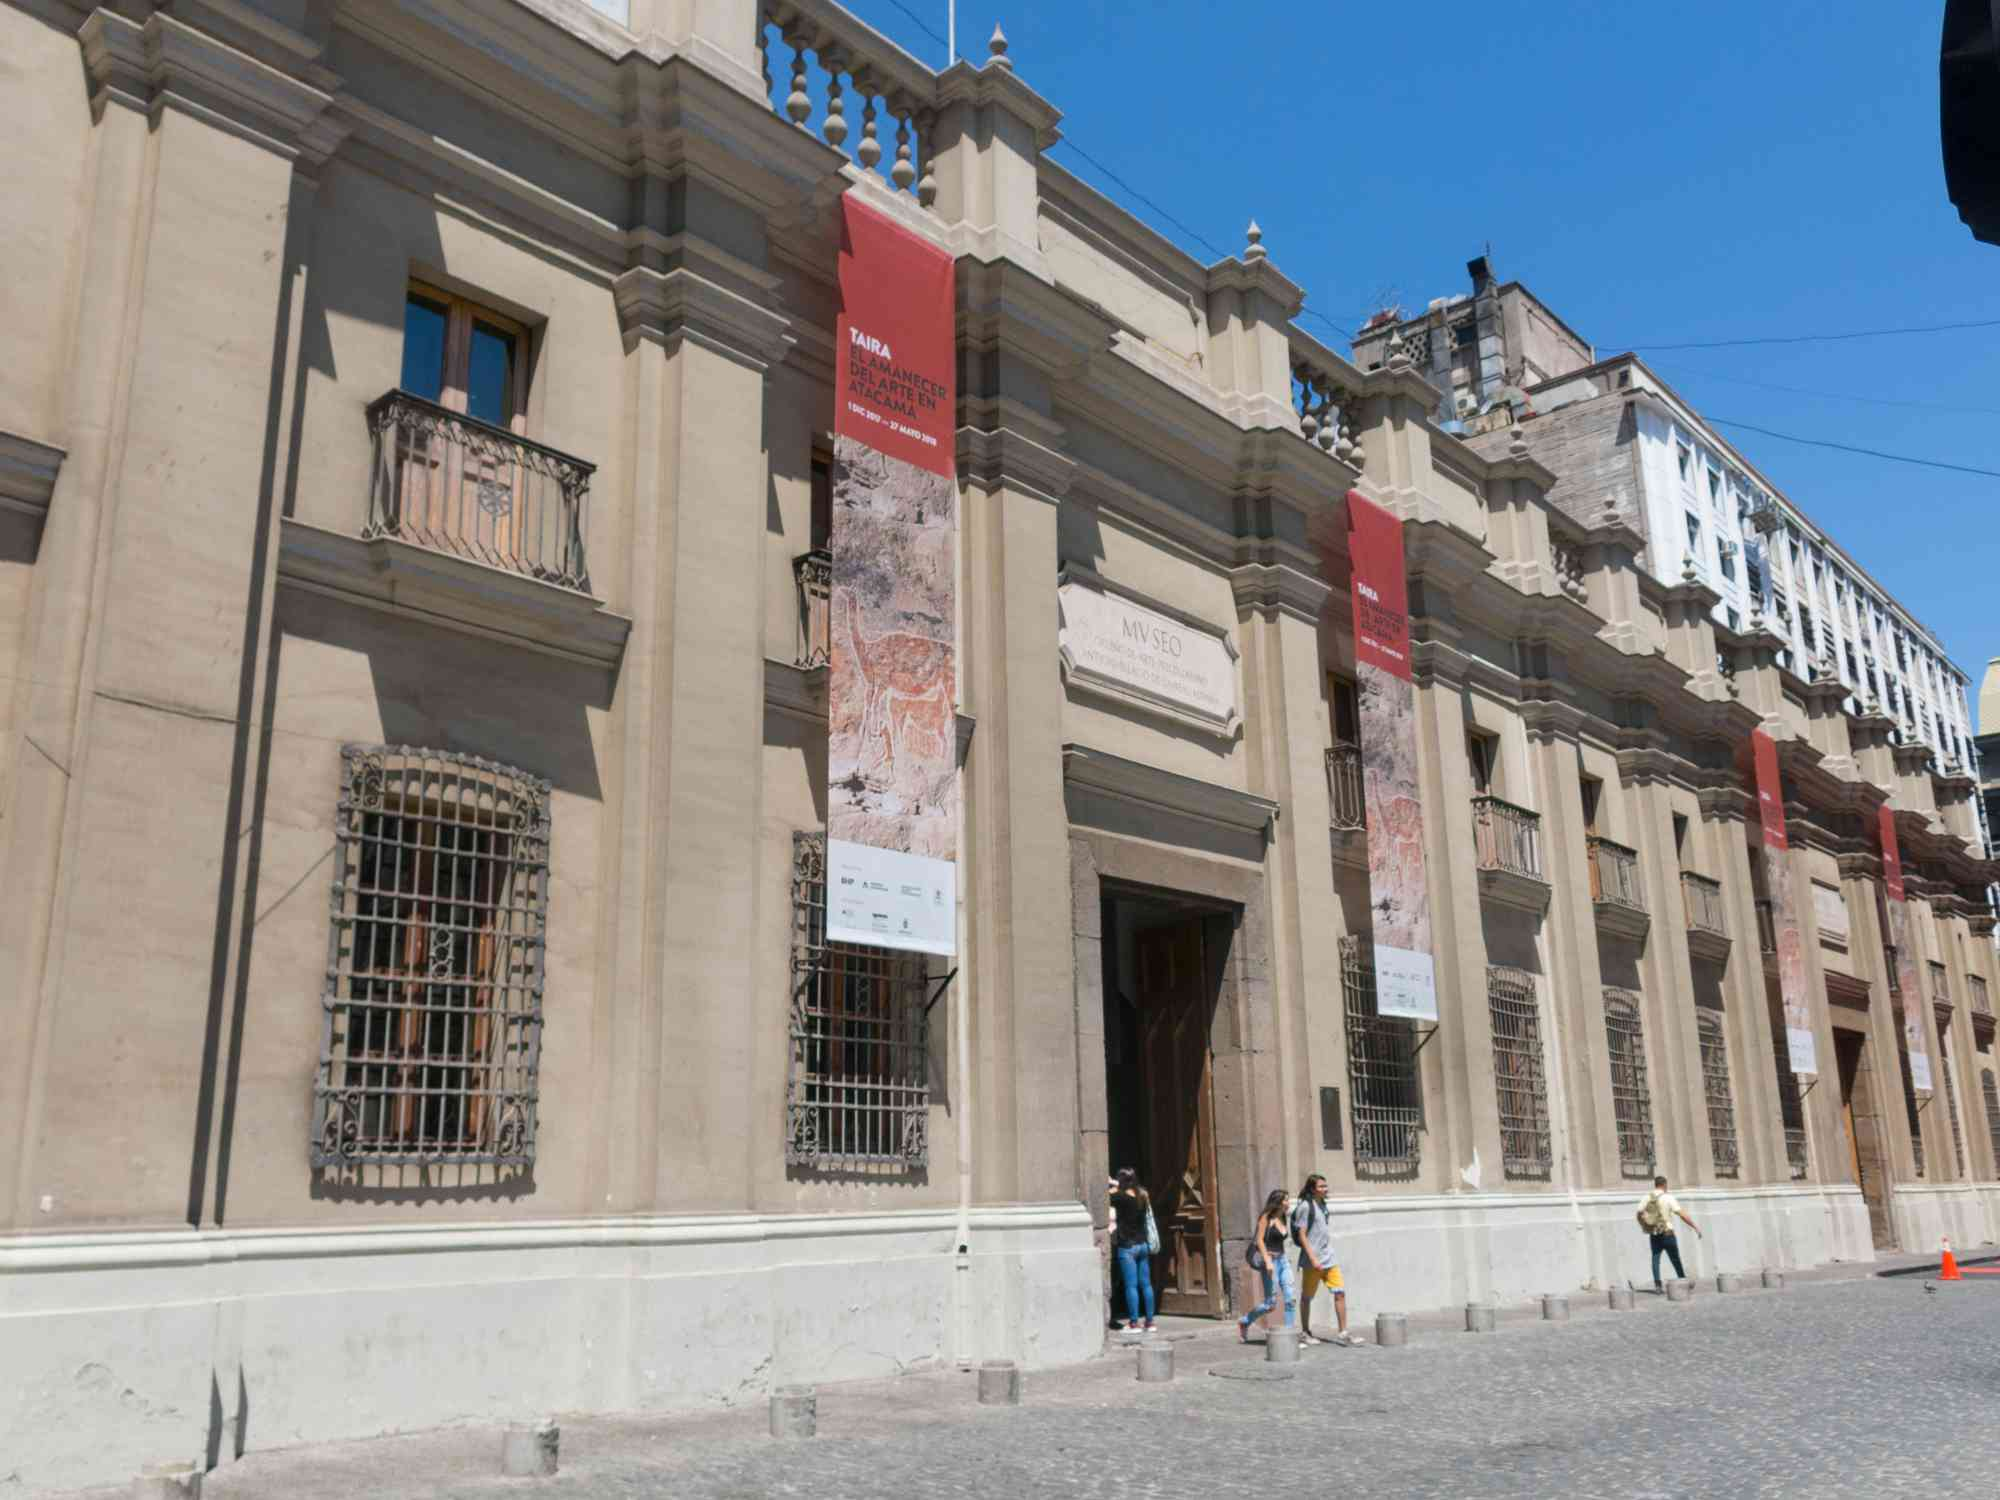 SANTIAGO DE CHILE, CHILE - JANUARY 26, 2018: Tourists visiting Chilean Museum of Pre-Columbian Art, an museum dedicated to the art pre-Columbian from Central and South America. Santiago de Chile.